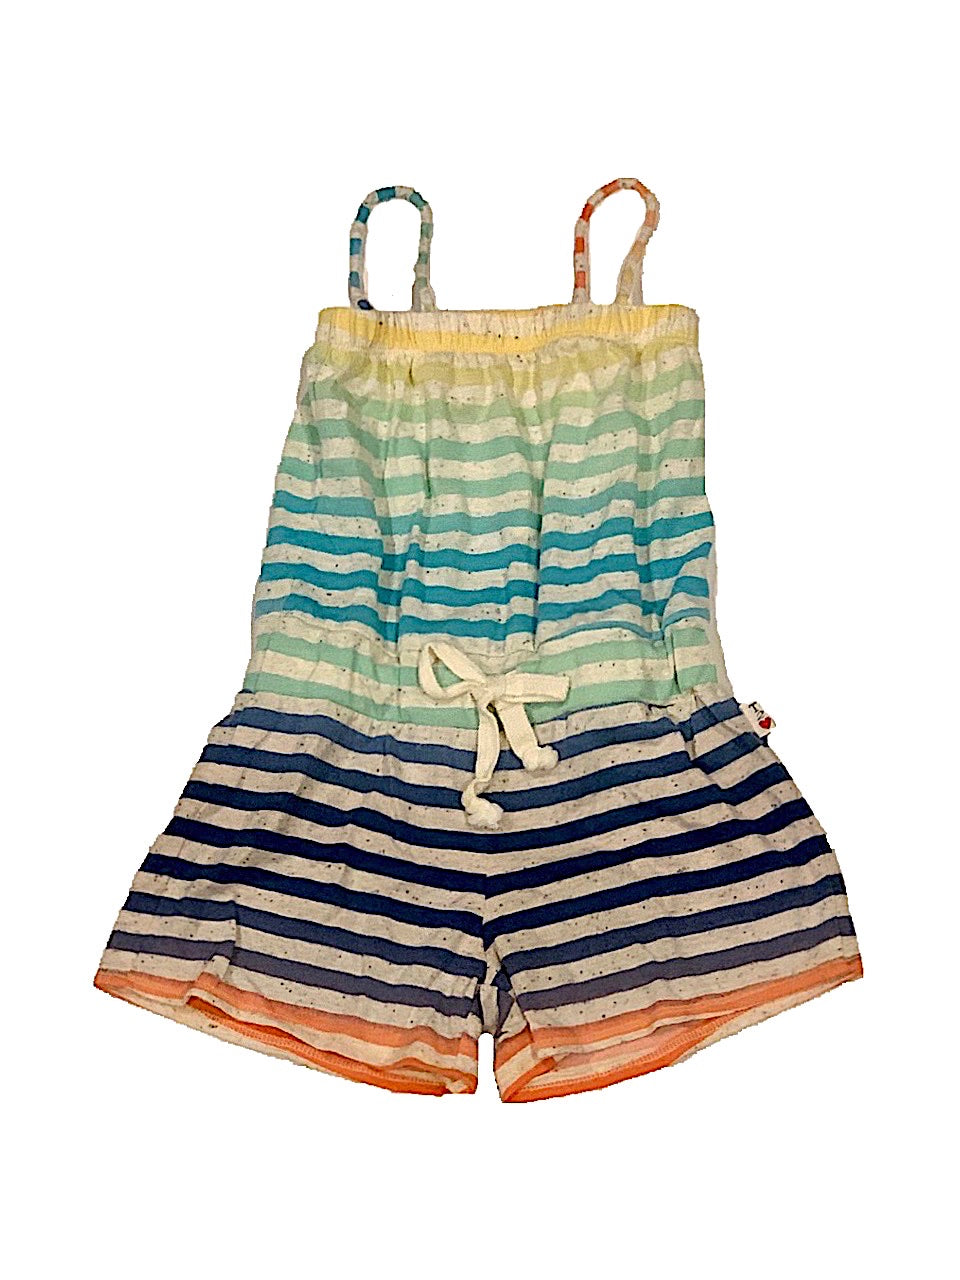 T2Love Romper with Drawstring